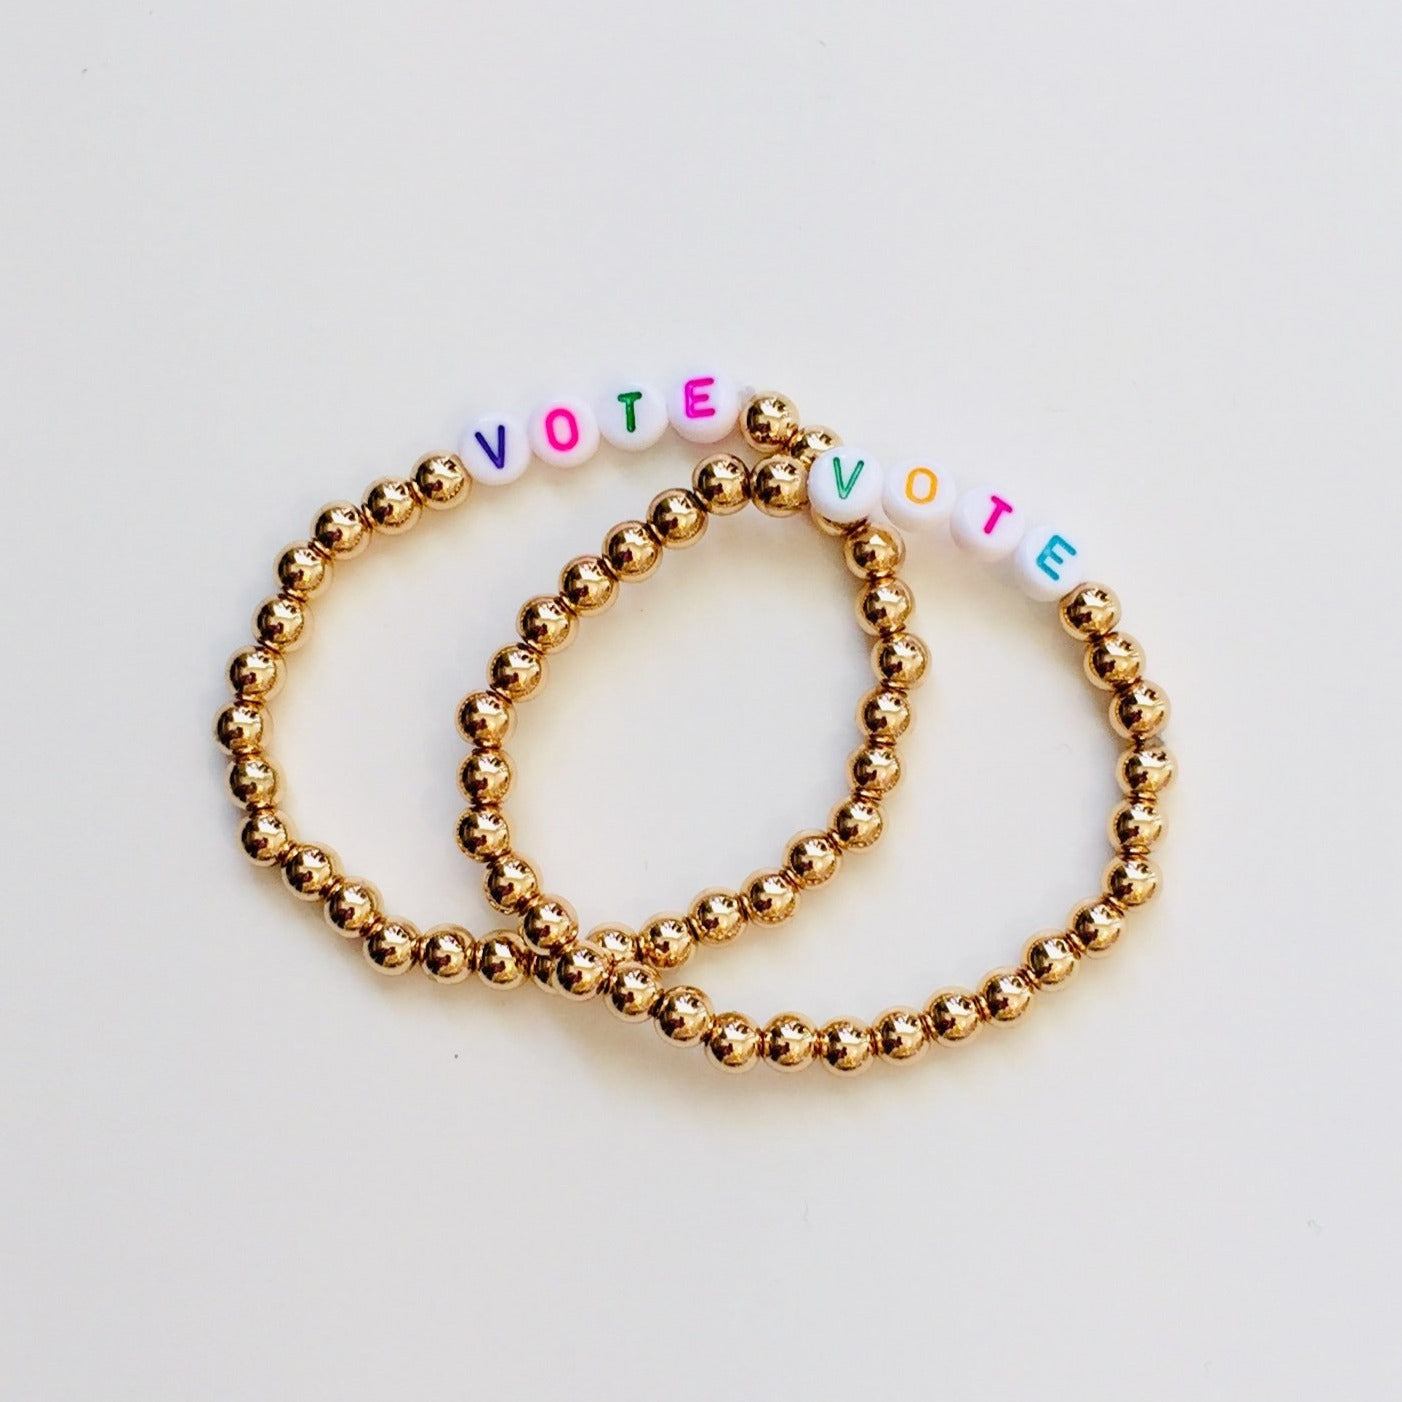 Vote Golden Friendship Bracelets, set of 2